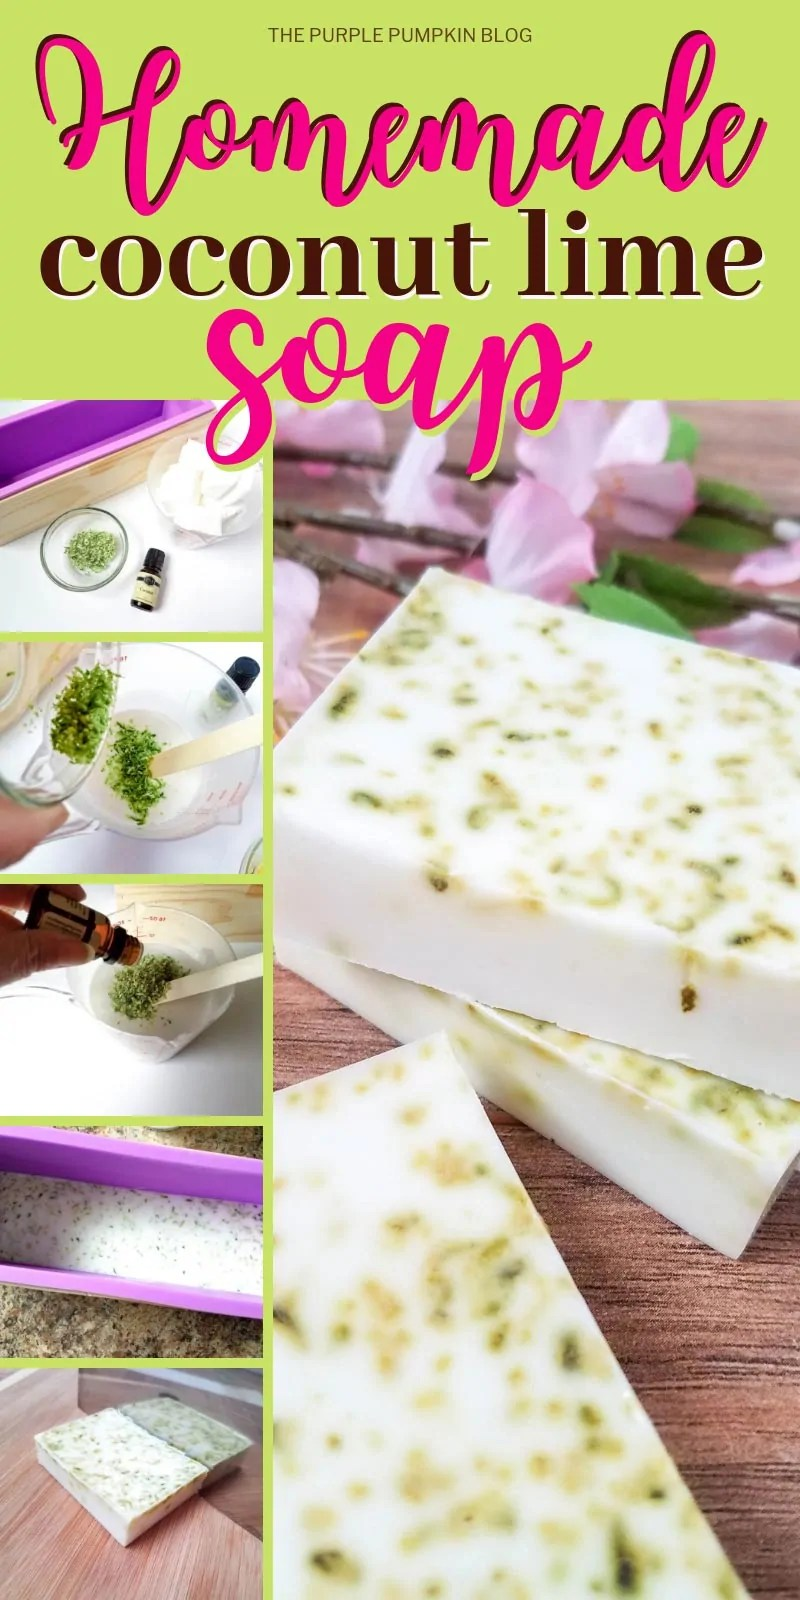 Step by step photos of how to make coconut lime soap with text overlay saying homemade coconut lime soap